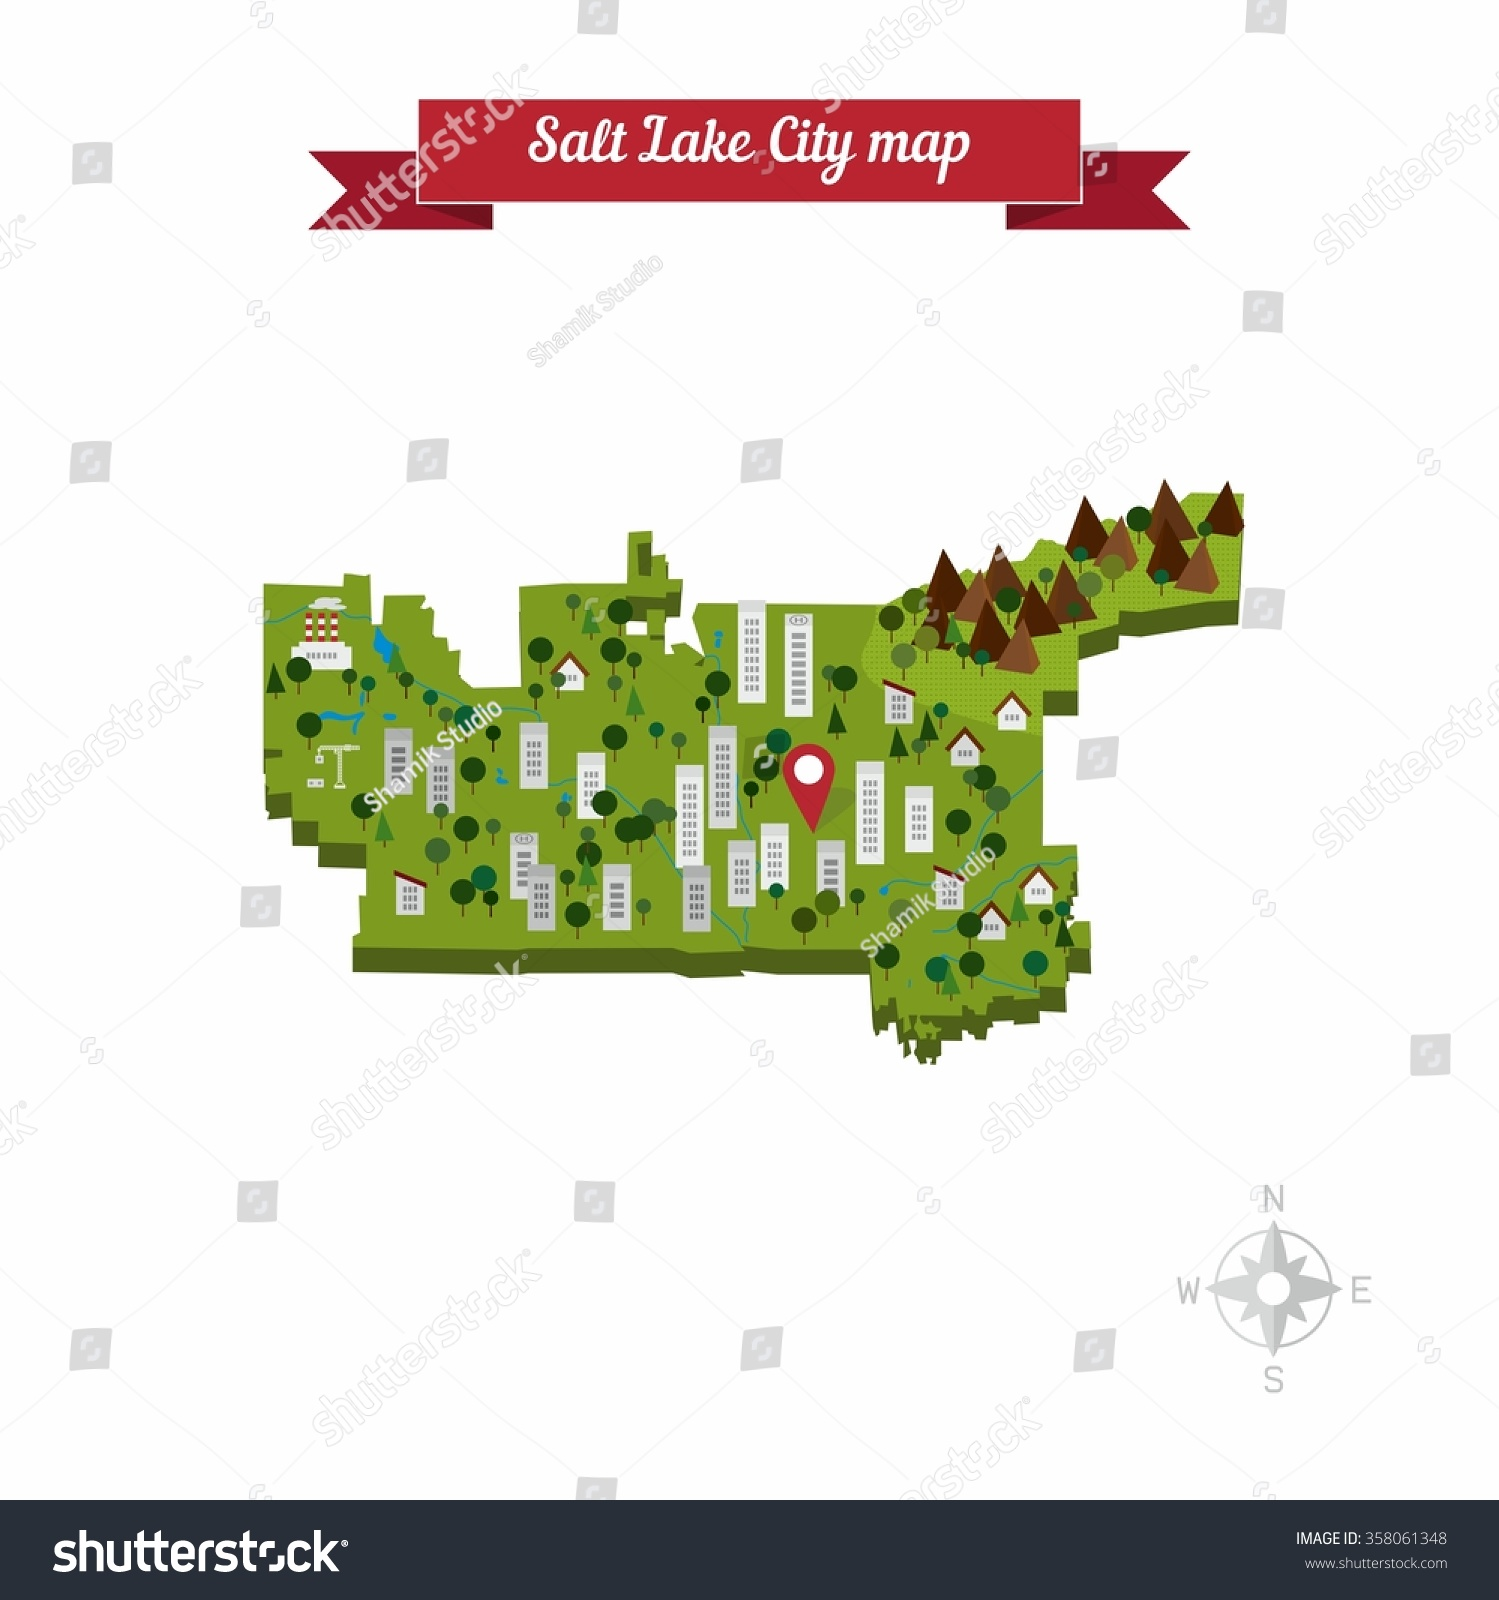 Salt Lake City On Us Map.Salt Lake City Utah Usa Map Stock Vector Royalty Free 358061348